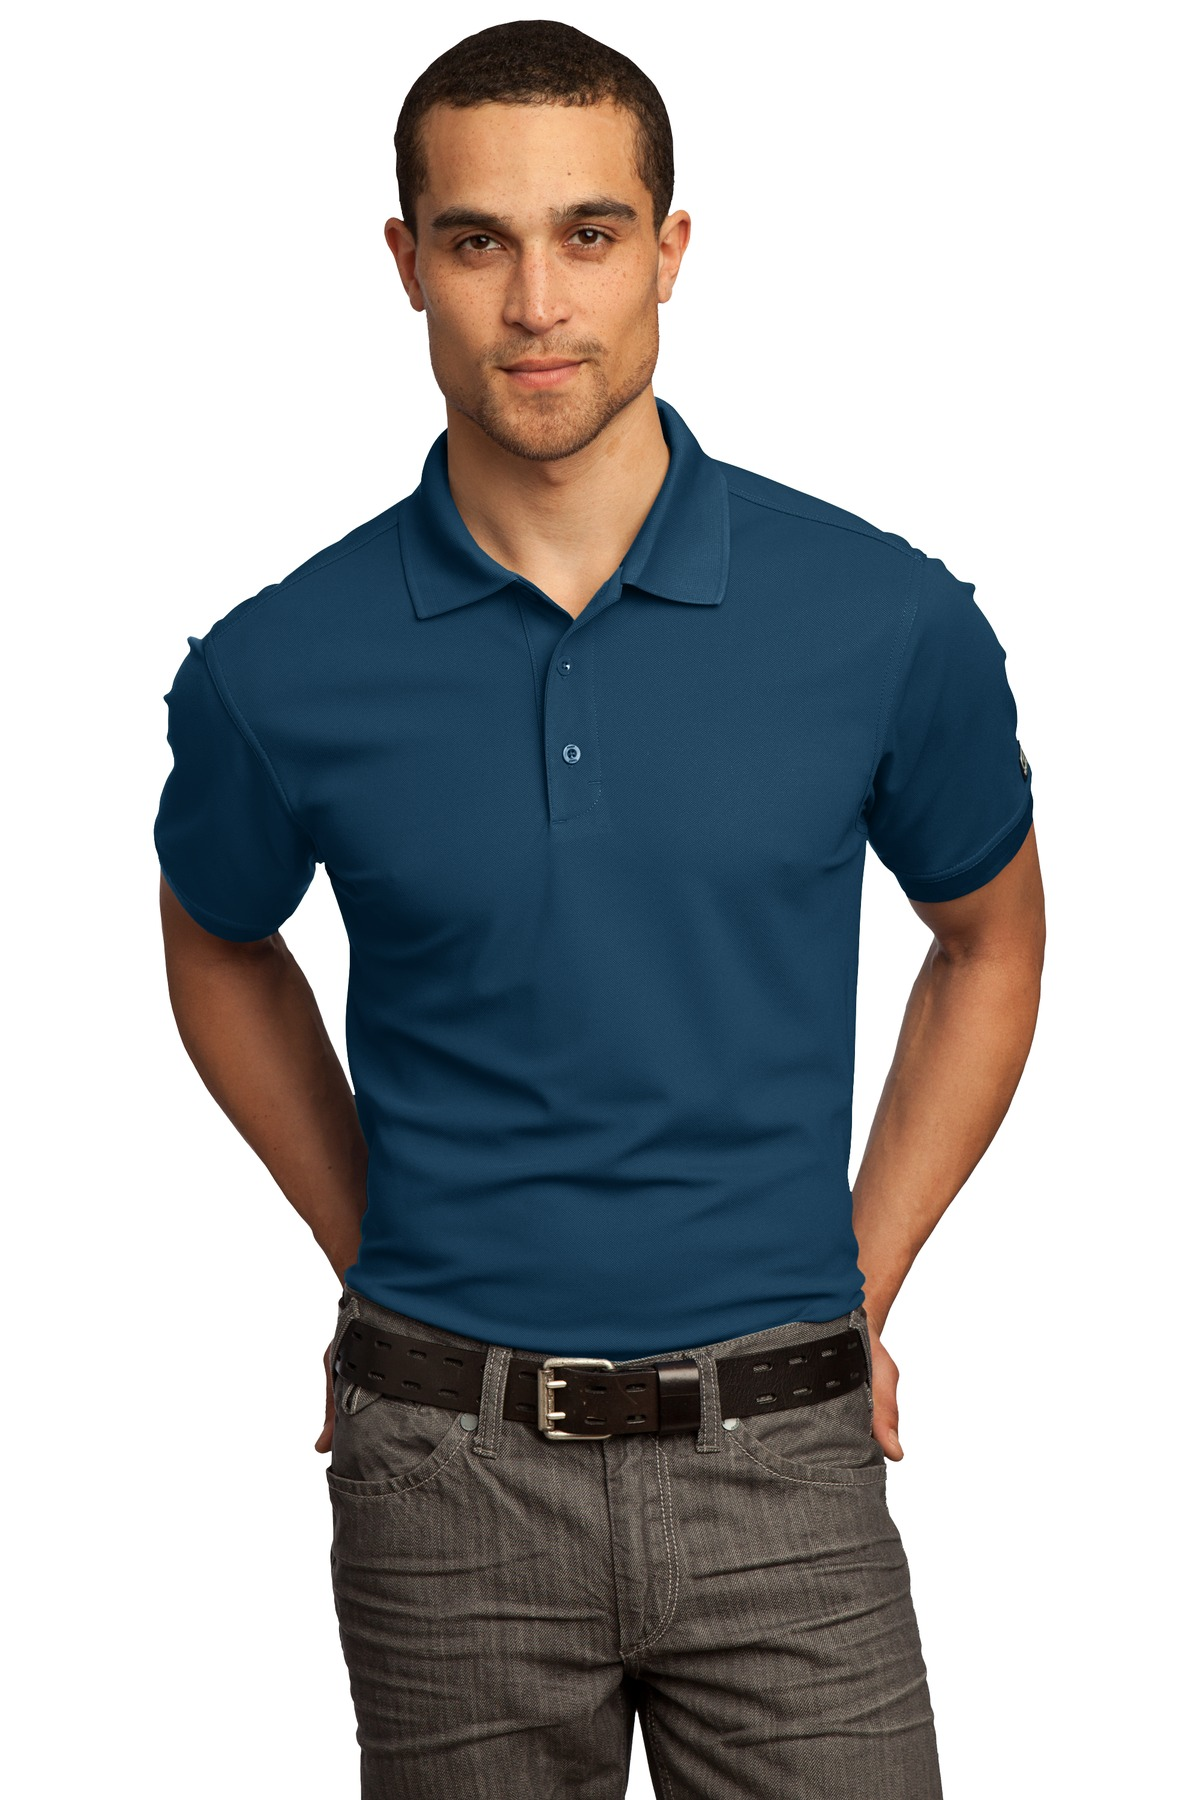 OGIO ®  - Caliber2.0 Polo. OG101 - Spar Blue